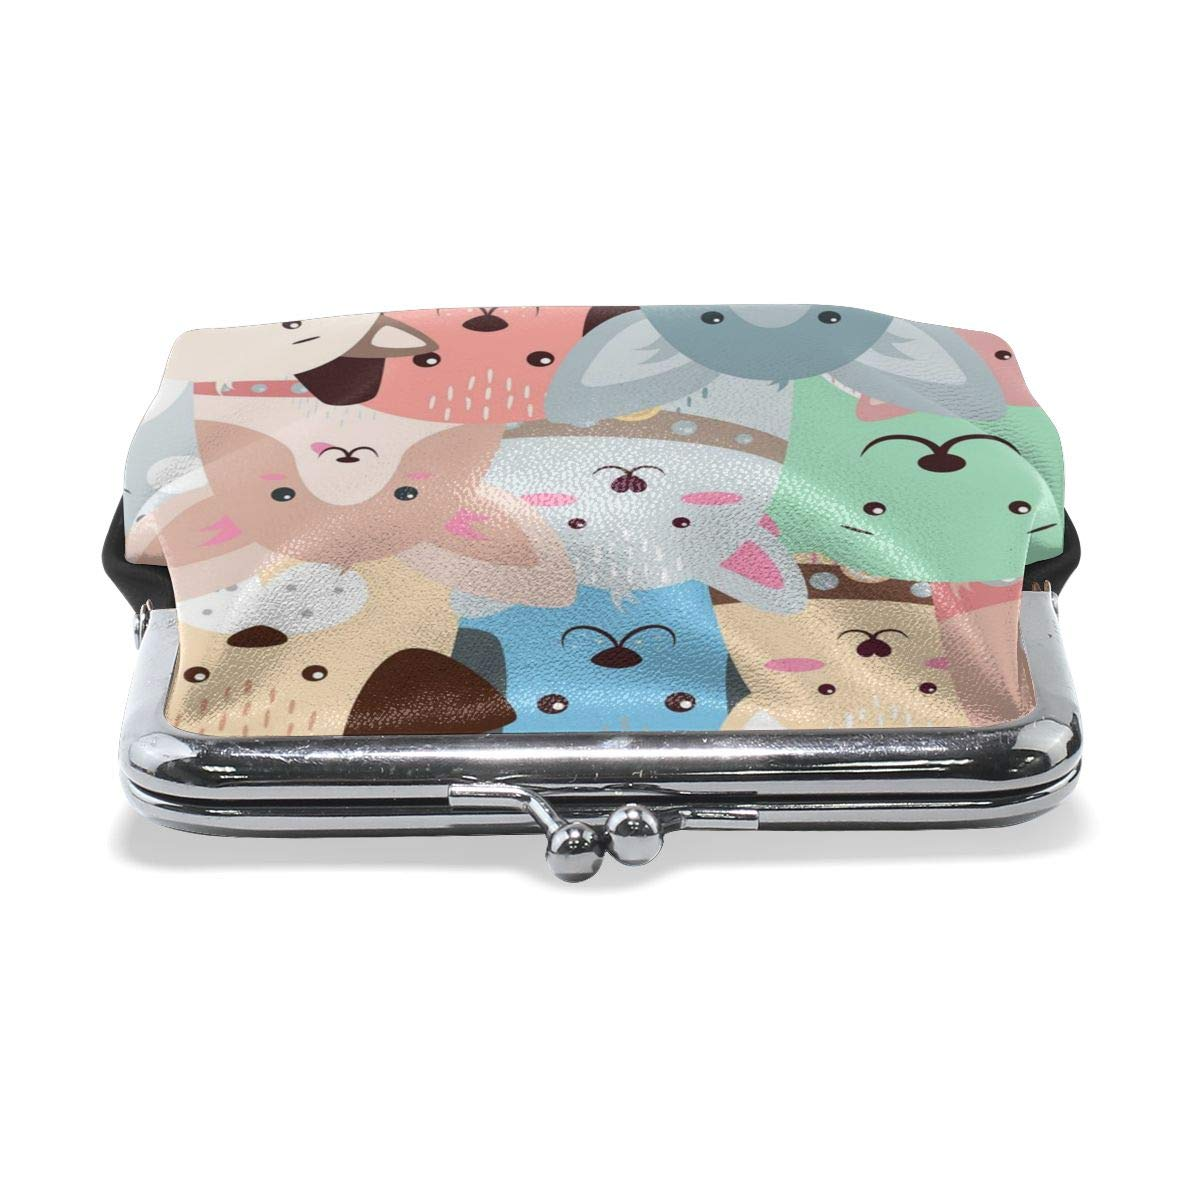 Poream Animals Dog Cute Funny Pattern Personalized Retro Leather Cute Classic Floral Coin Purse Clutch Pouch Wallet For Girls And Womens